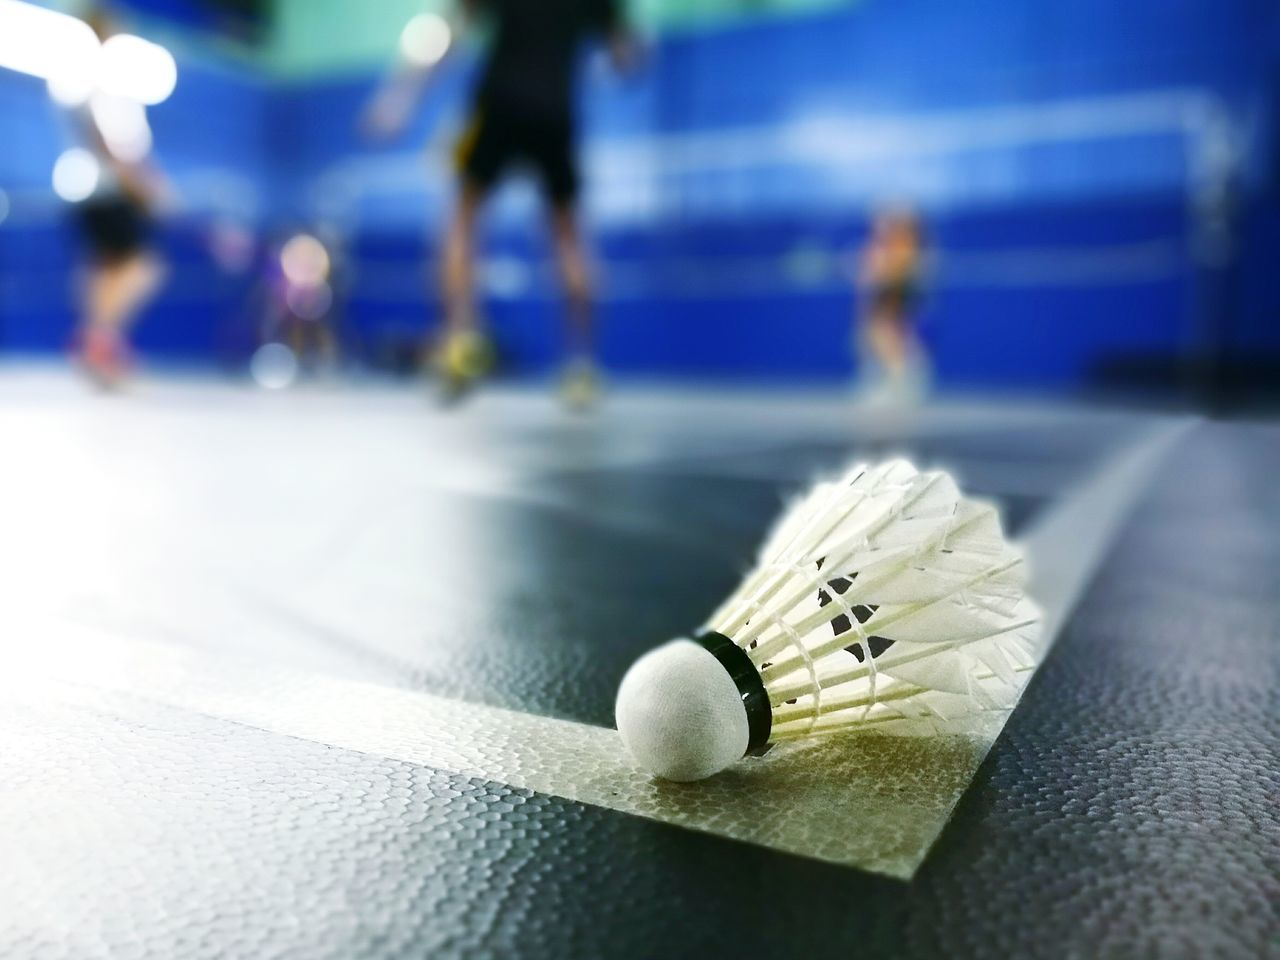 Badminton Lover Badmintontime Badminton Court Badminton Badminton Ball Sports Focus On Foreground Incidental People Close-up Sports Photography SportsPhotographer Malaysia Malaysian Colorful Color